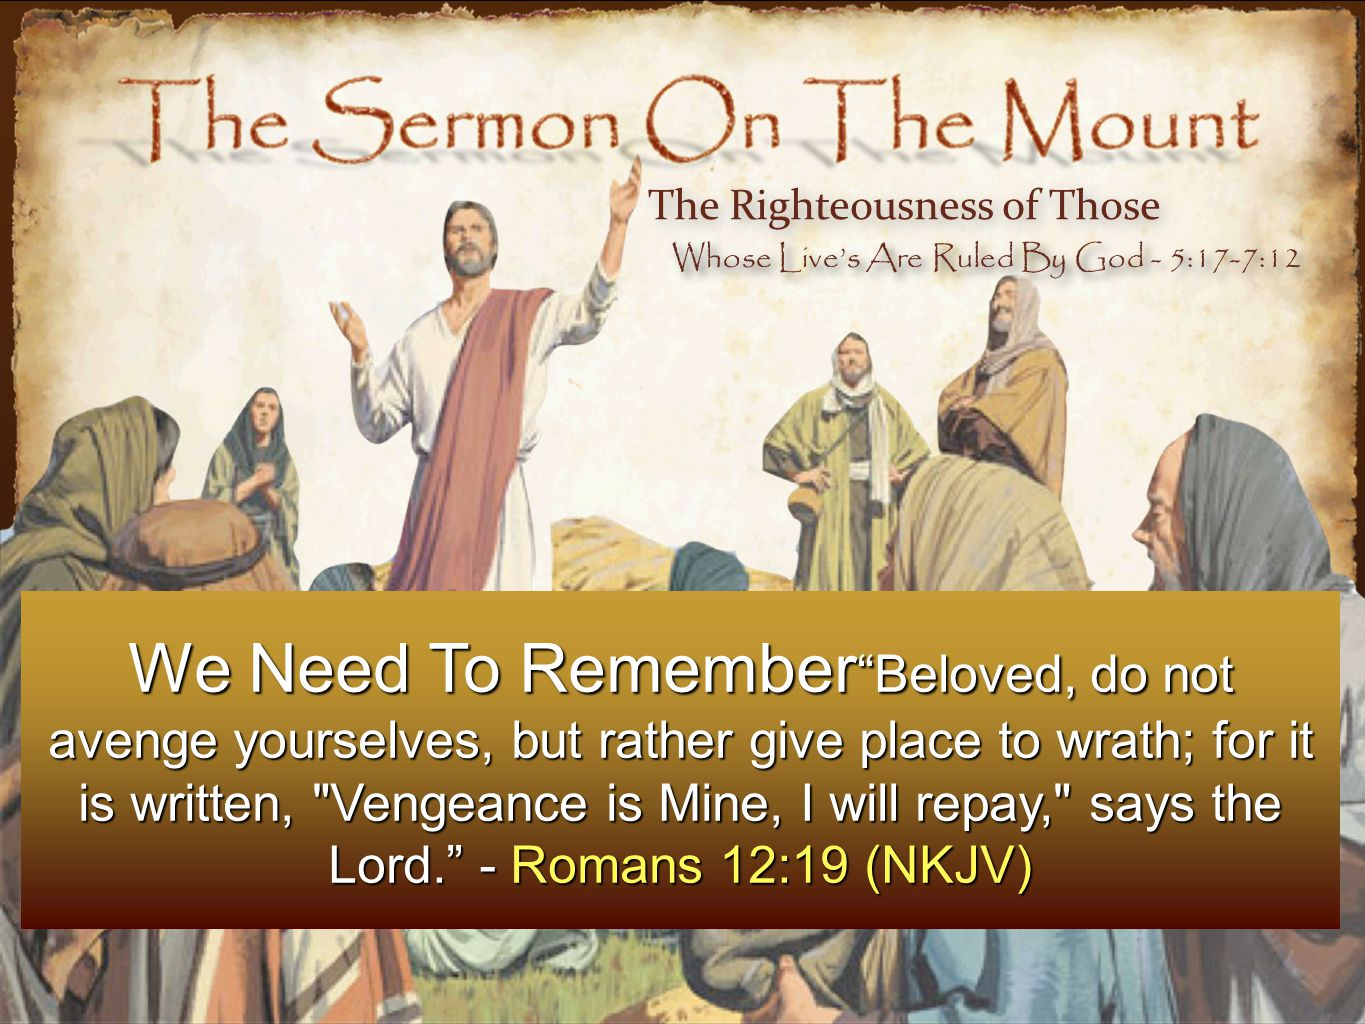 We Need To Remember Beloved, do not avenge yourselves, but rather give place to wrath; for it is written, Vengeance is Mine, I will repay, says the Lord. - Romans 12:19 (NKJV) The Righteousness of Those Whose Live's Are Ruled By God - 5:17-7:12